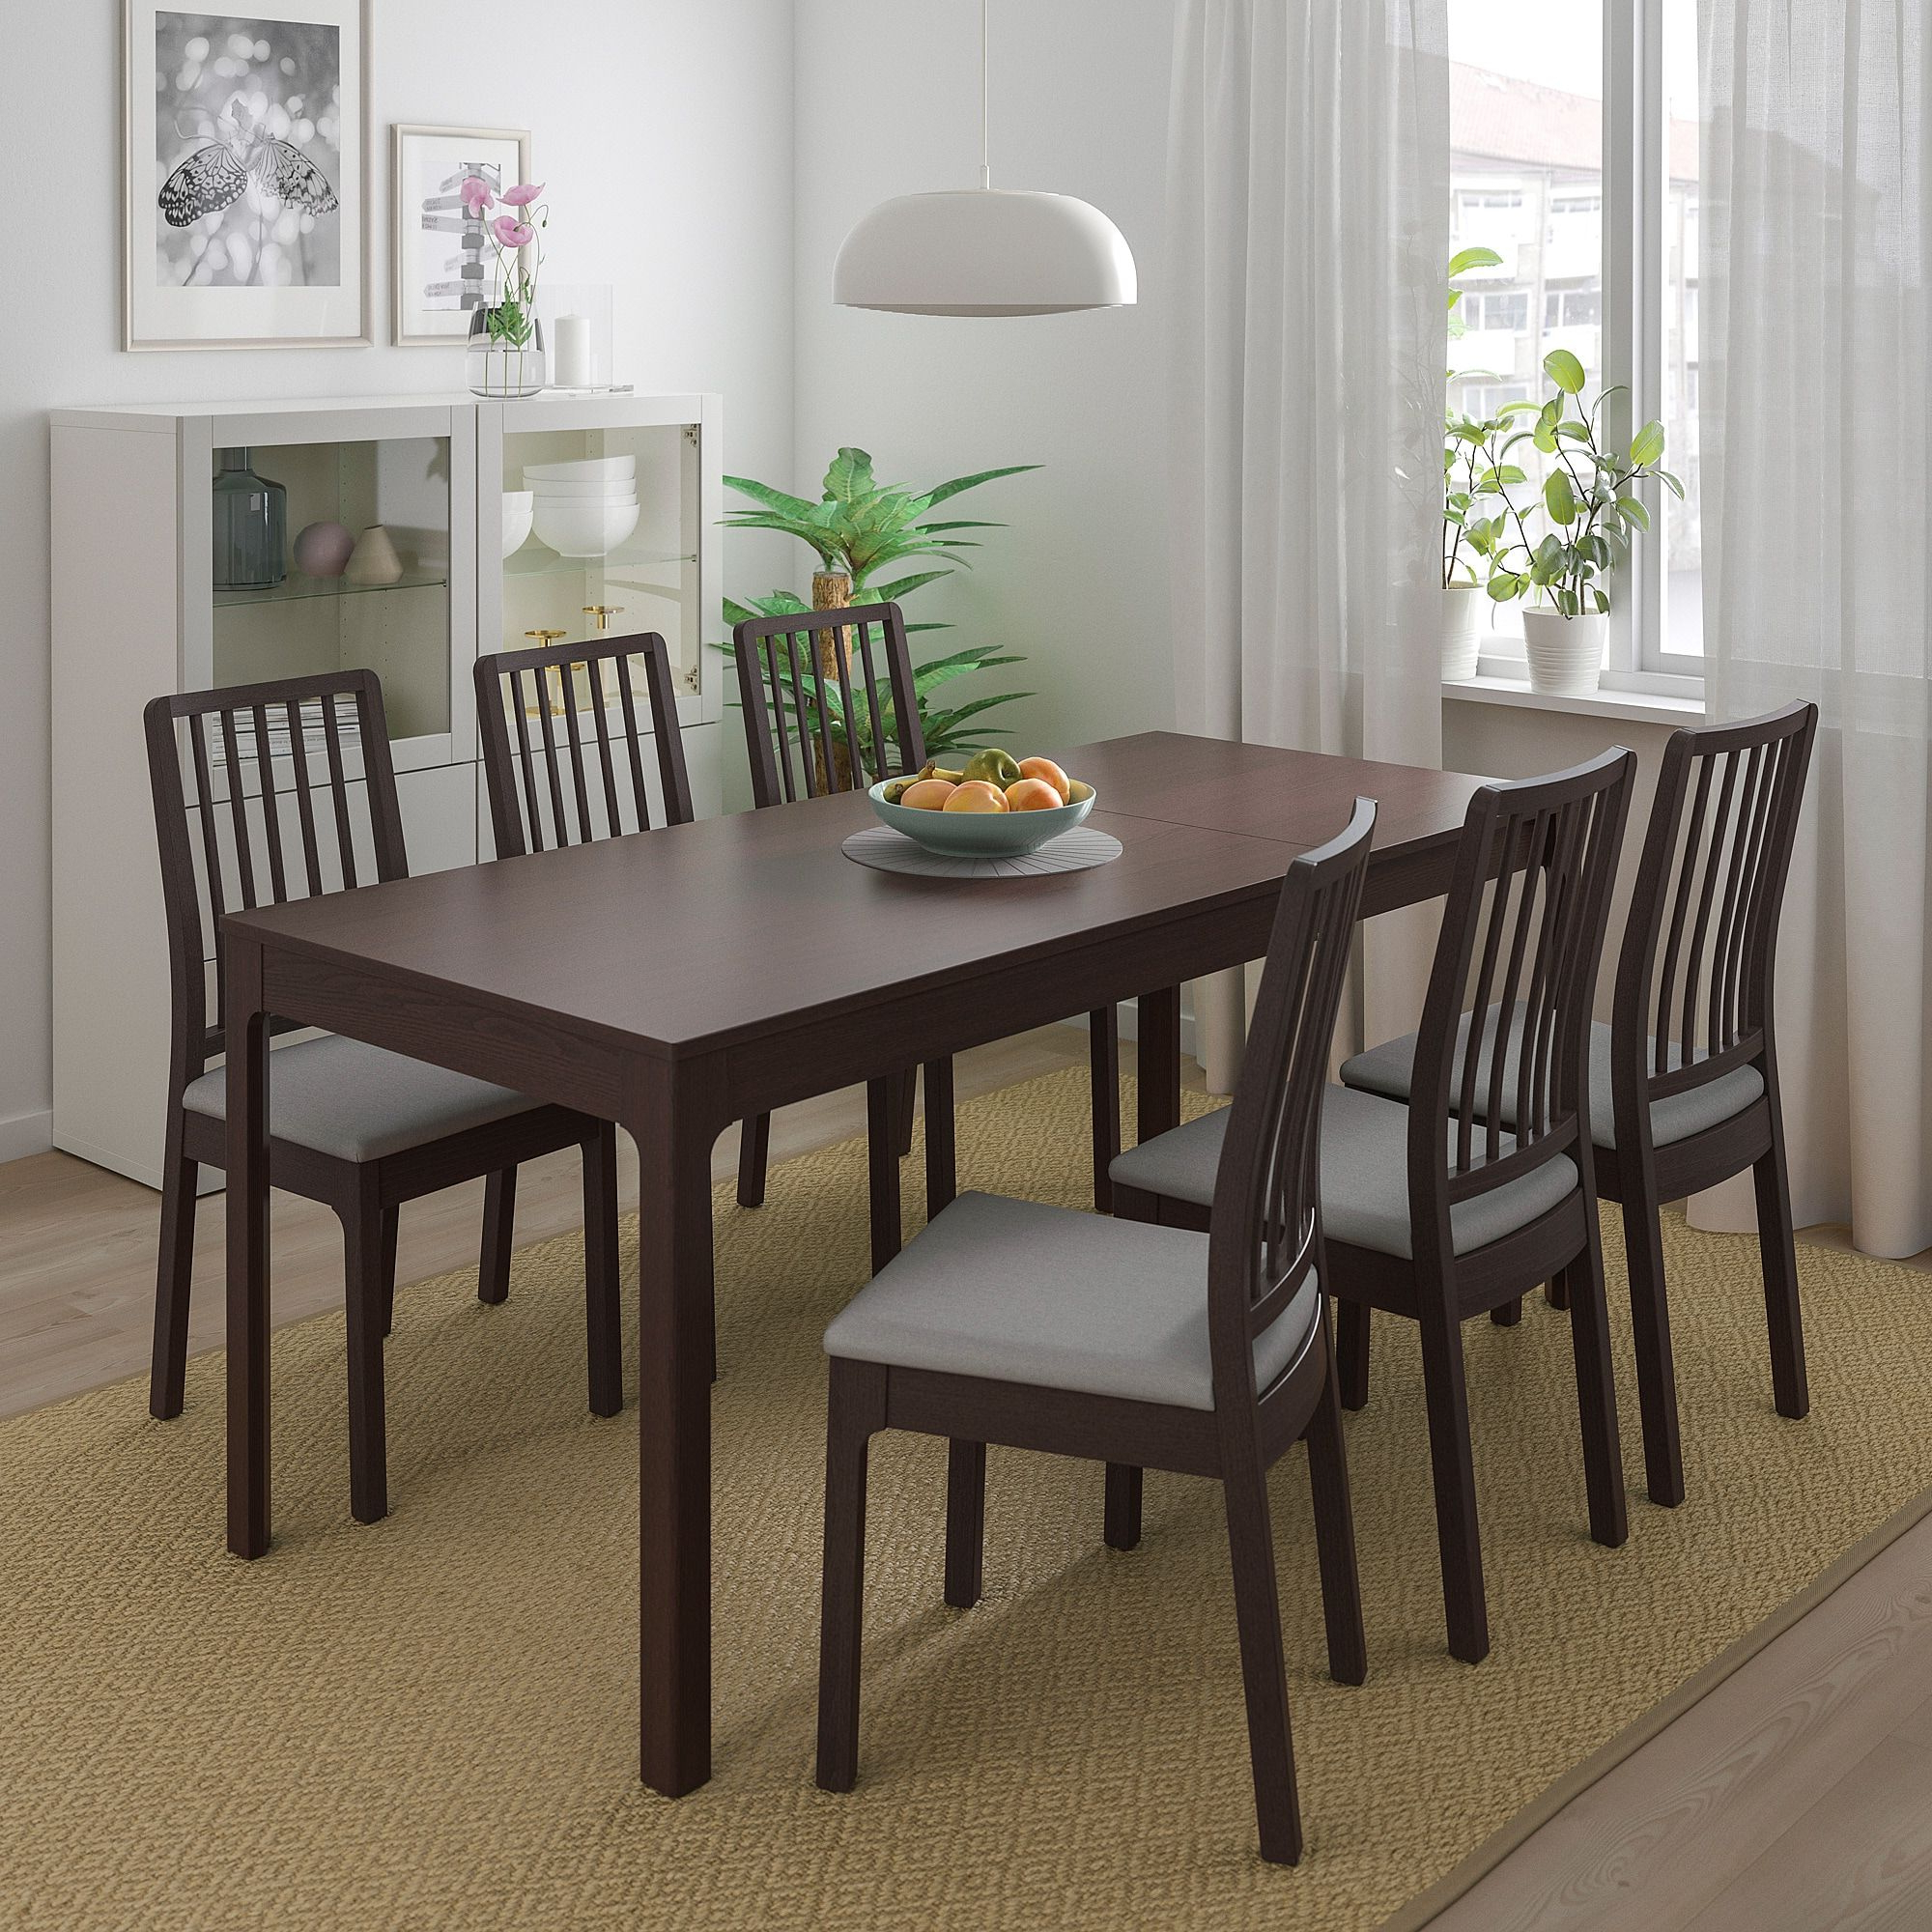 Well Liked Middleport 5 Piece Dining Sets Intended For Ikea – Ekedalen / Table And 4 Chairs Dark Brown, Orrsta Light Gray (View 18 of 20)